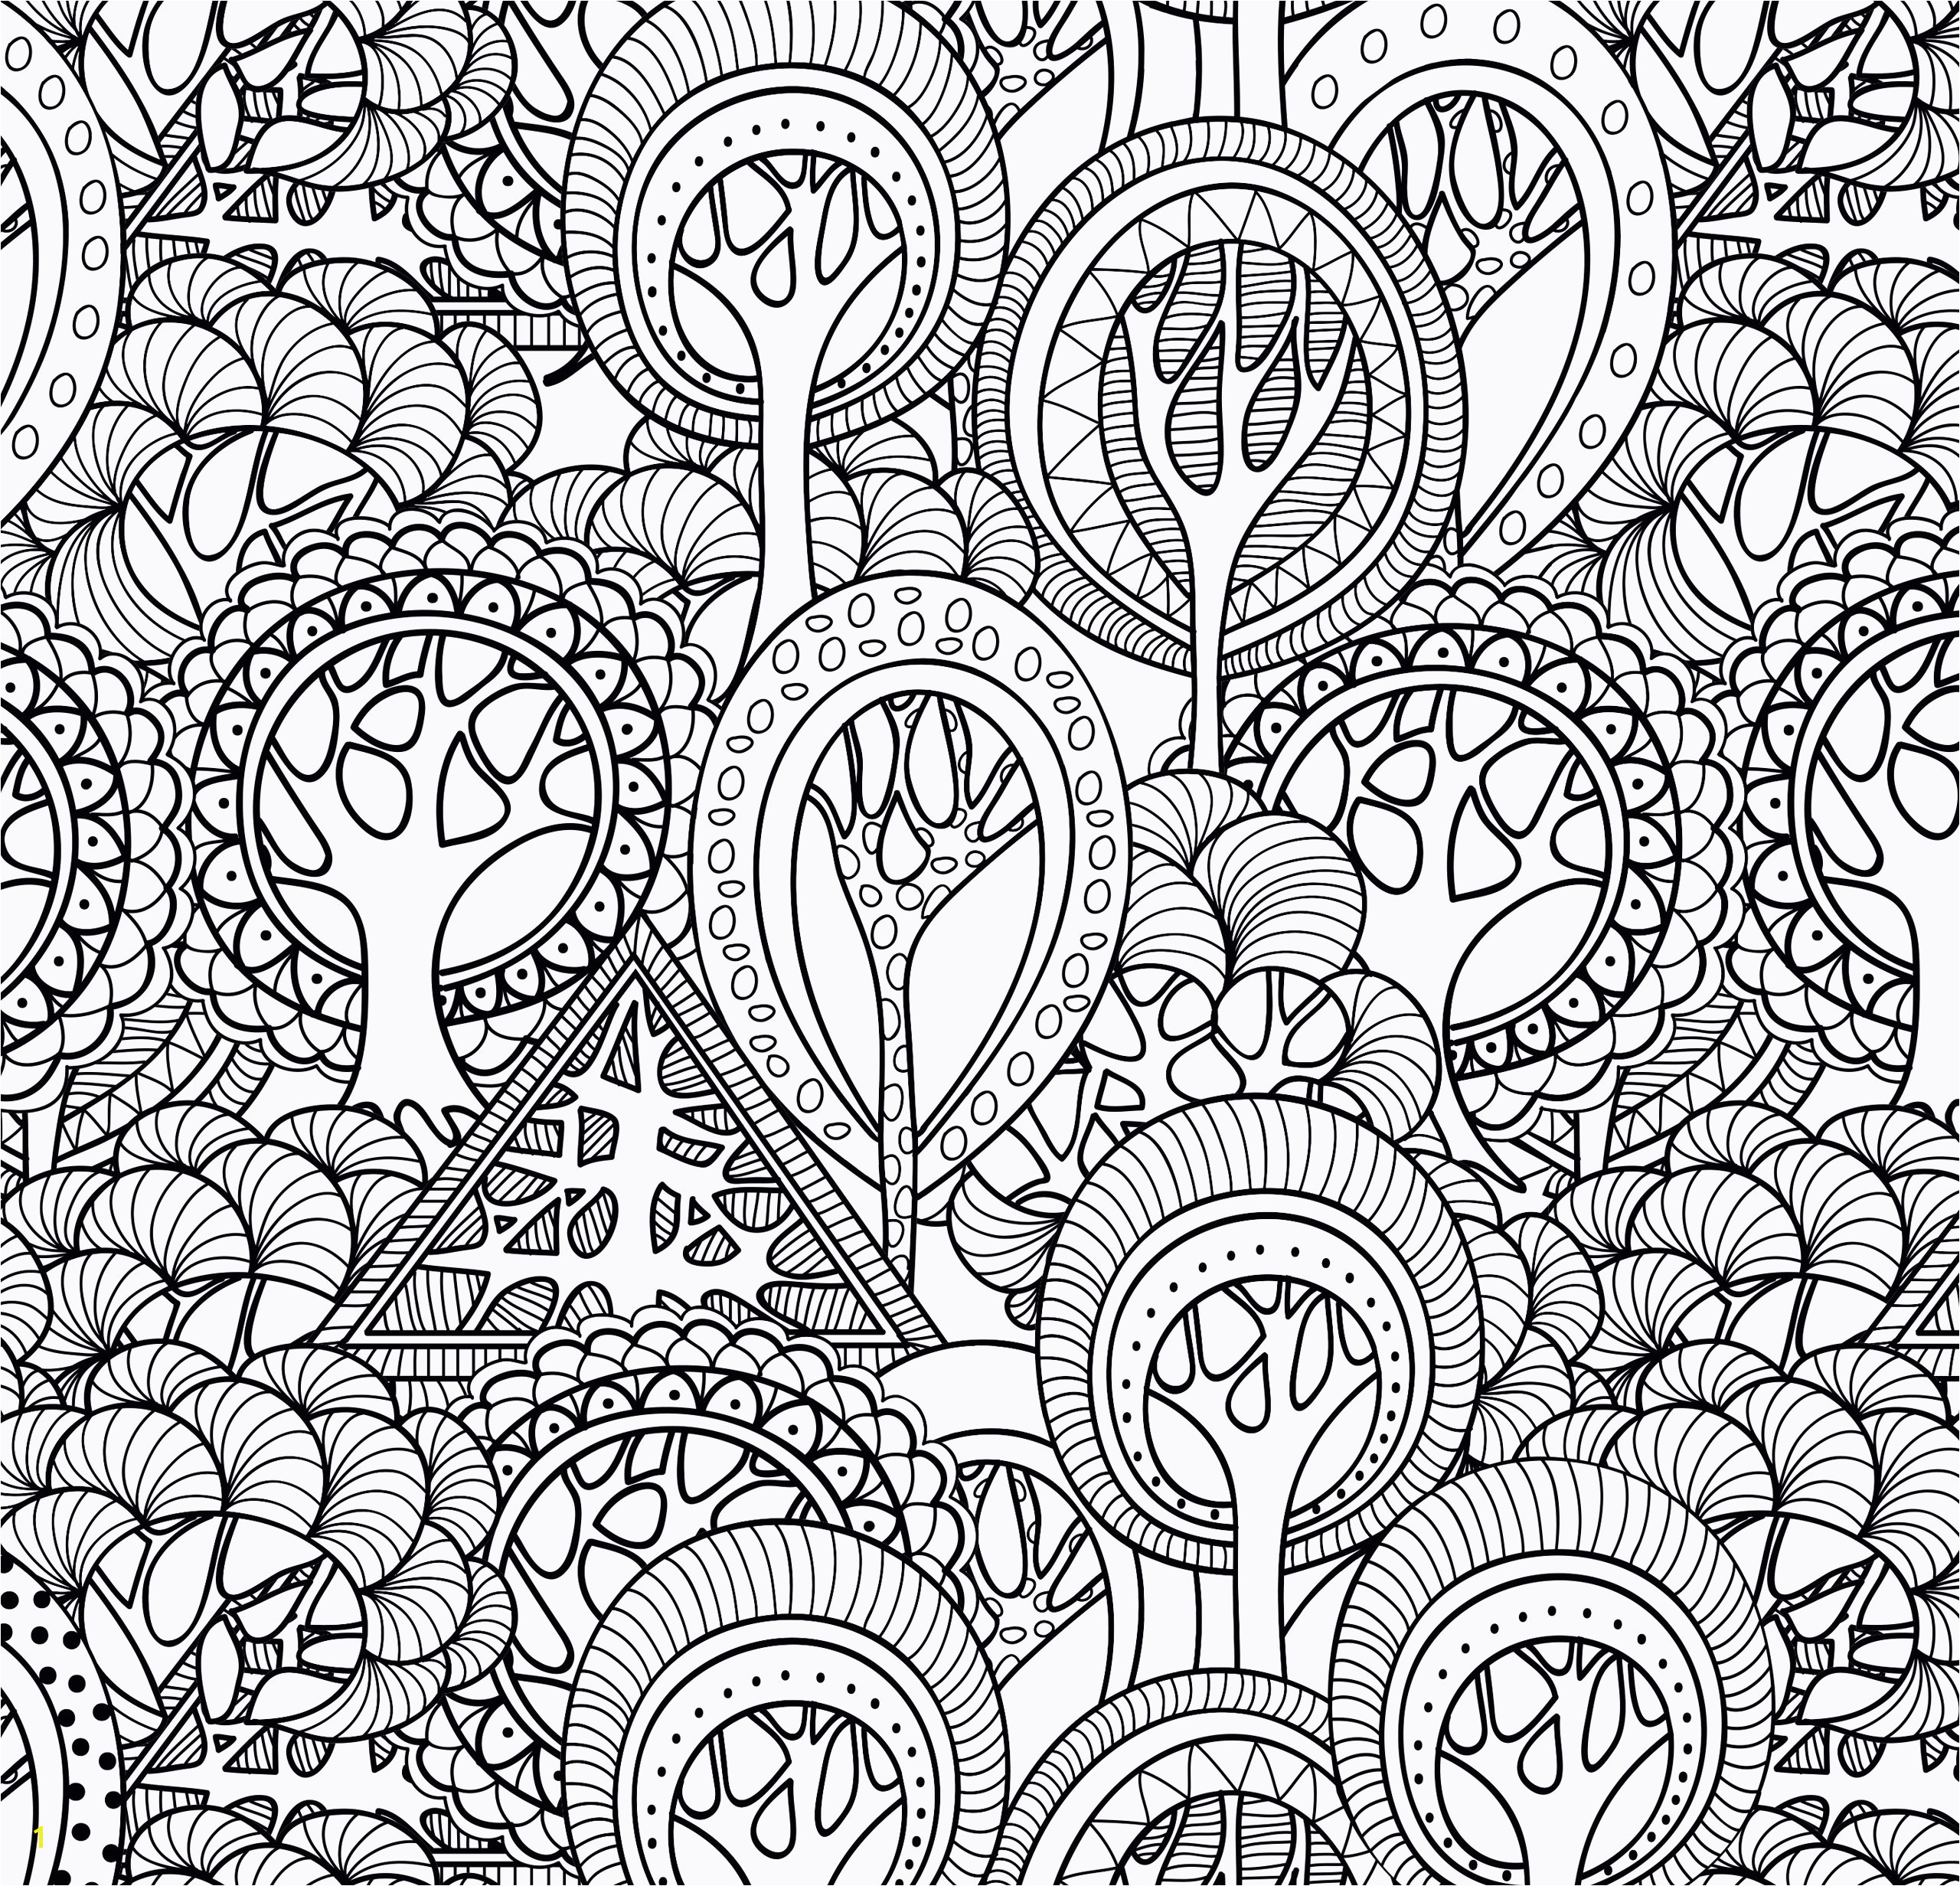 Free Printable Coloring Worksheets for Kids Free Coloring Pages Printables New Cool Coloring Page for Adult